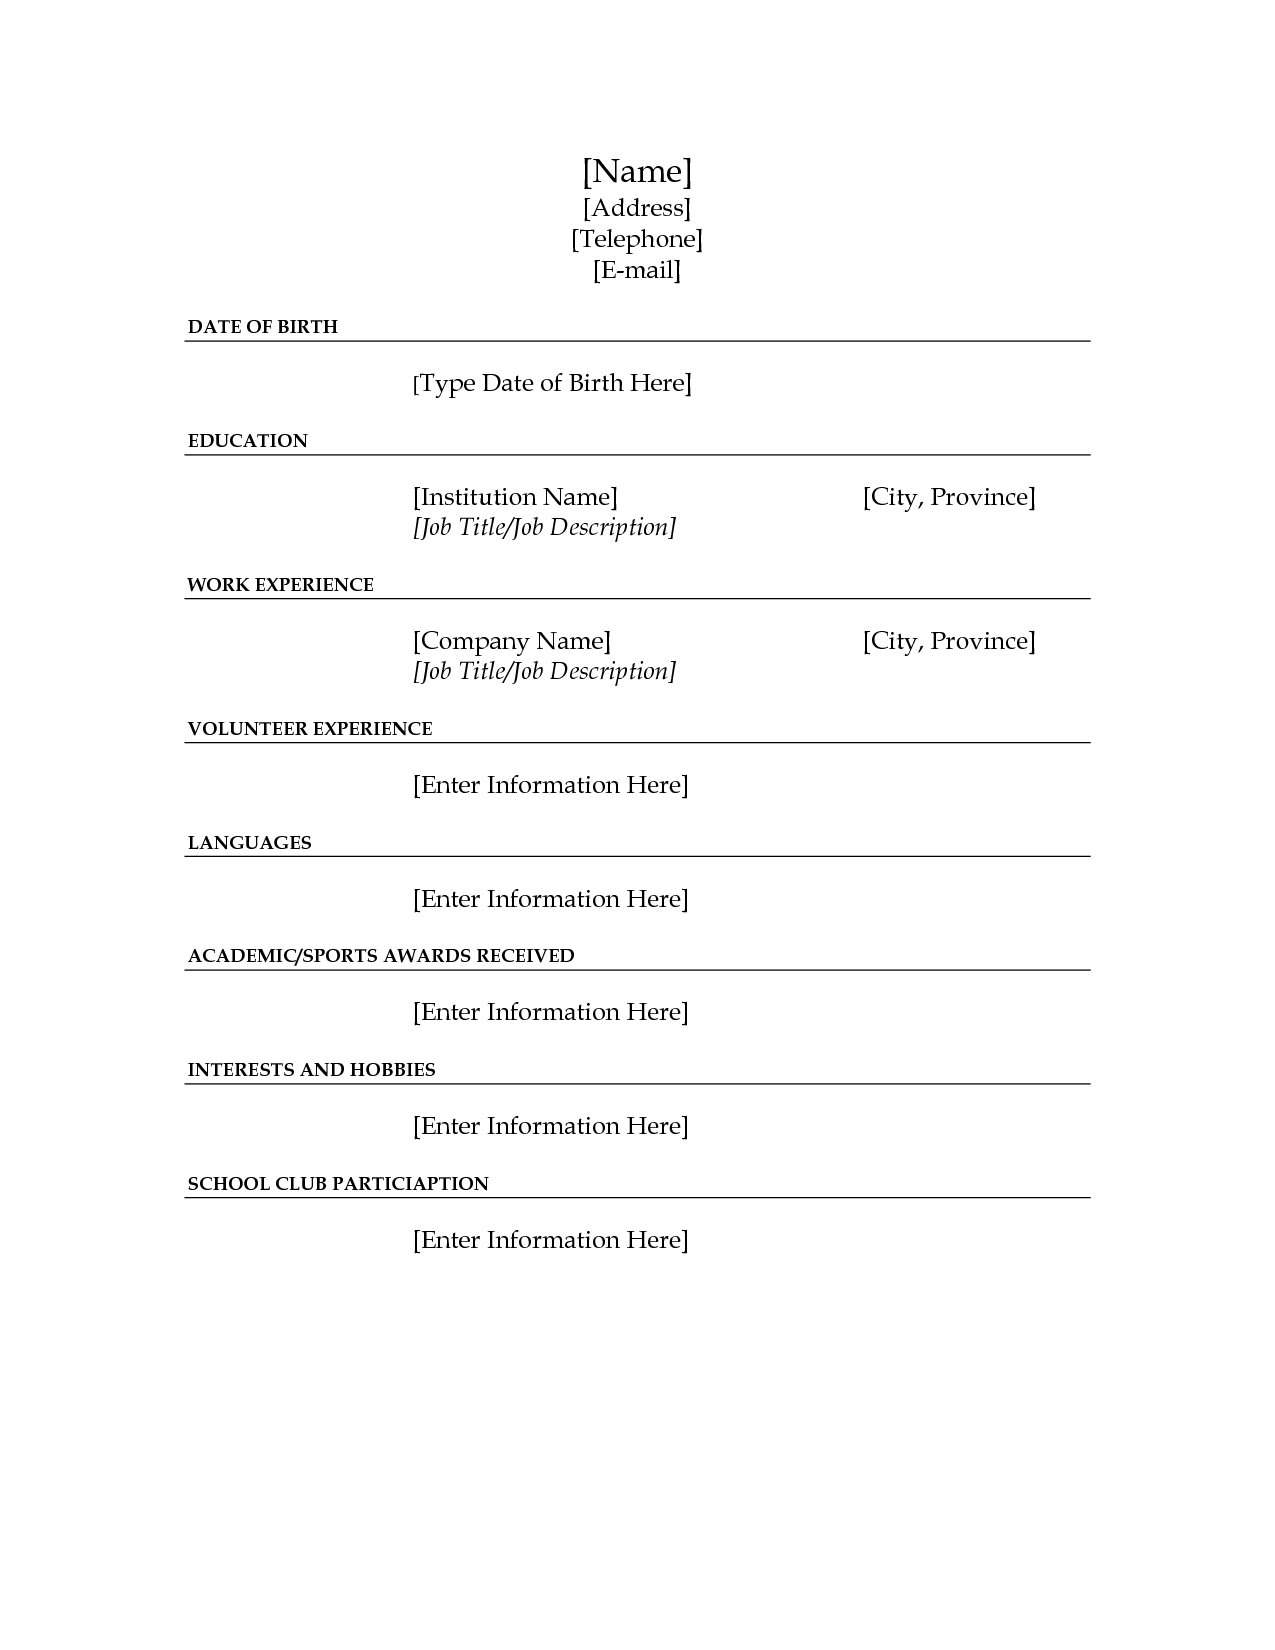 Free Fill In The Blank Resume resumecareerinfofree – Free Online Resume Templates Printable